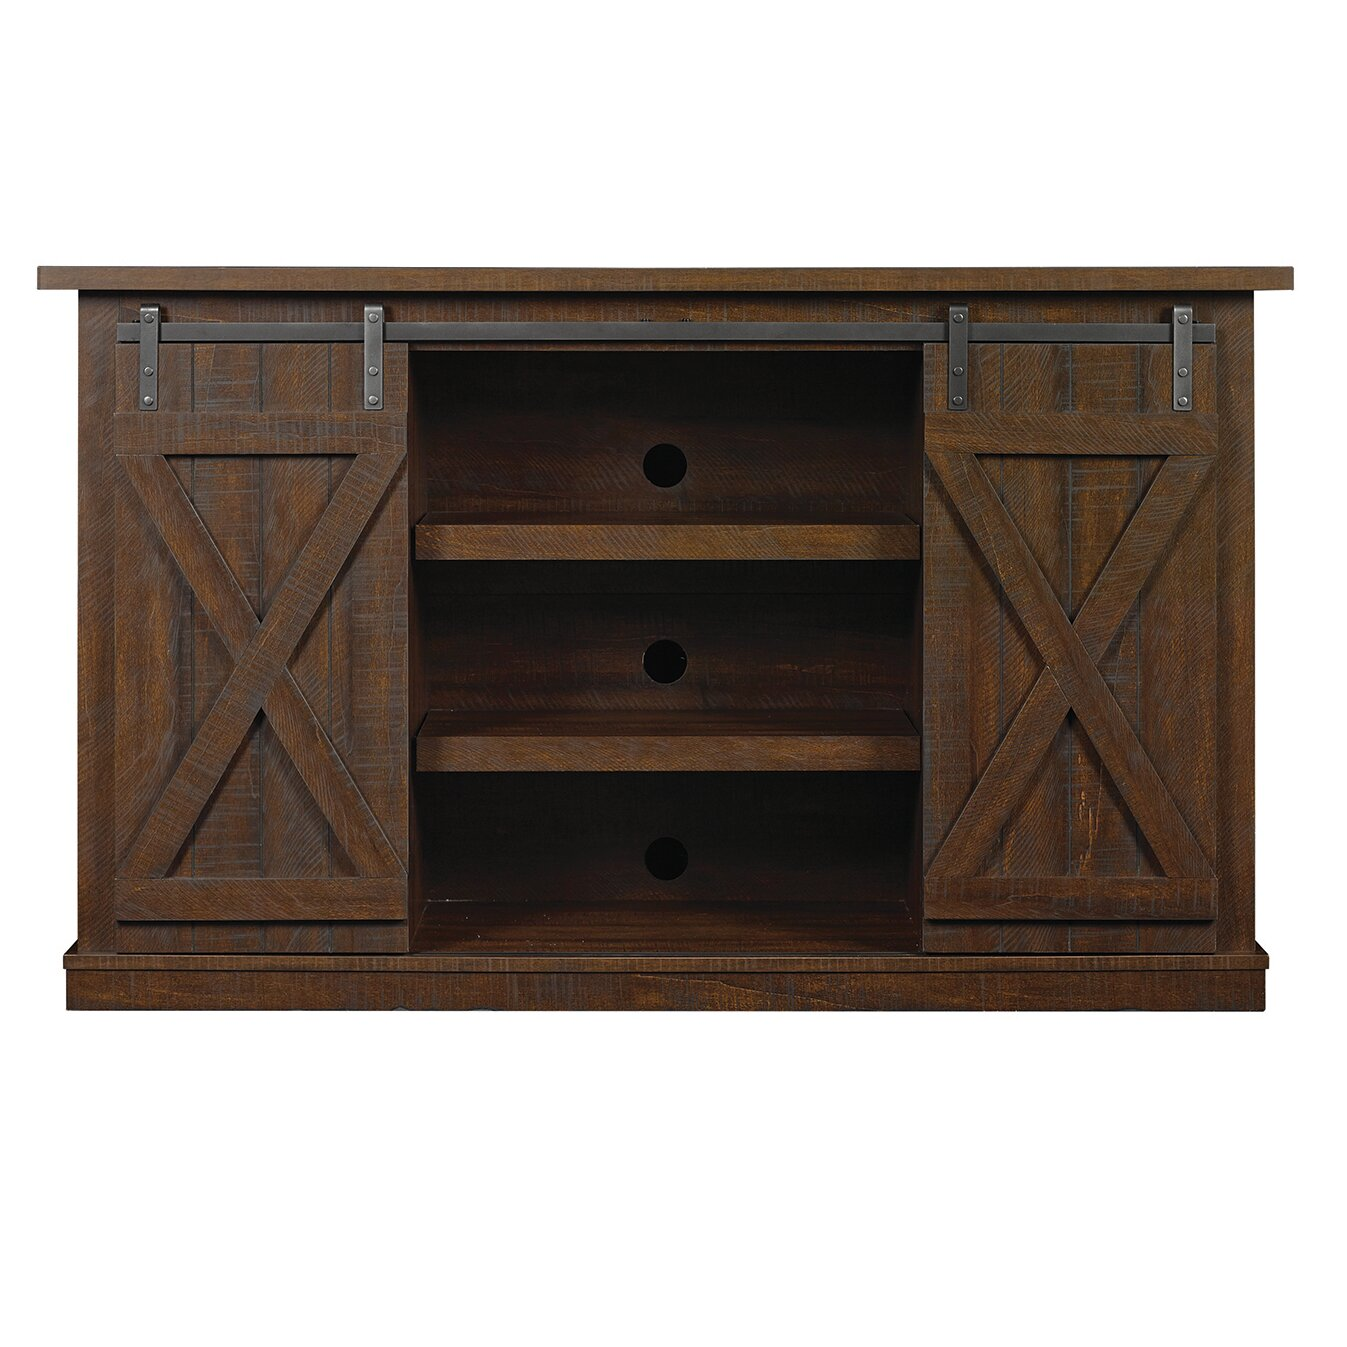 Bluestone 54 tv stand reviews allmodern floridaeventfo Images